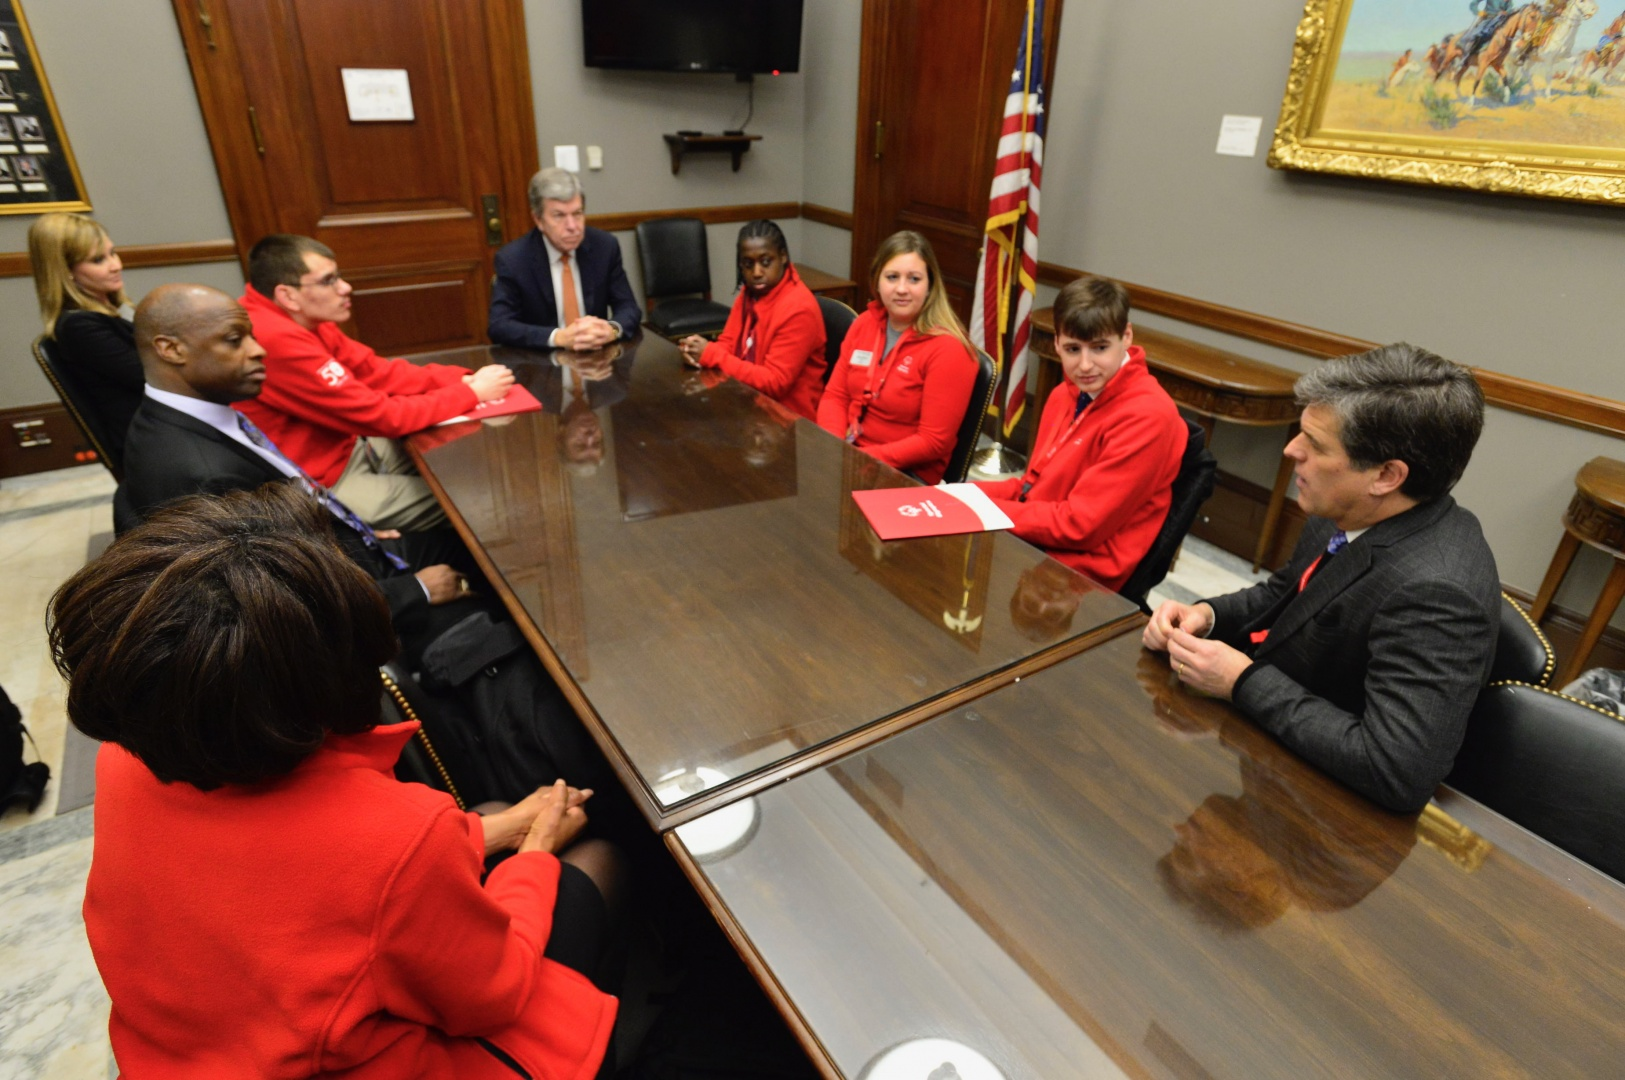 Special Olympics Capitol Hill Day 2018